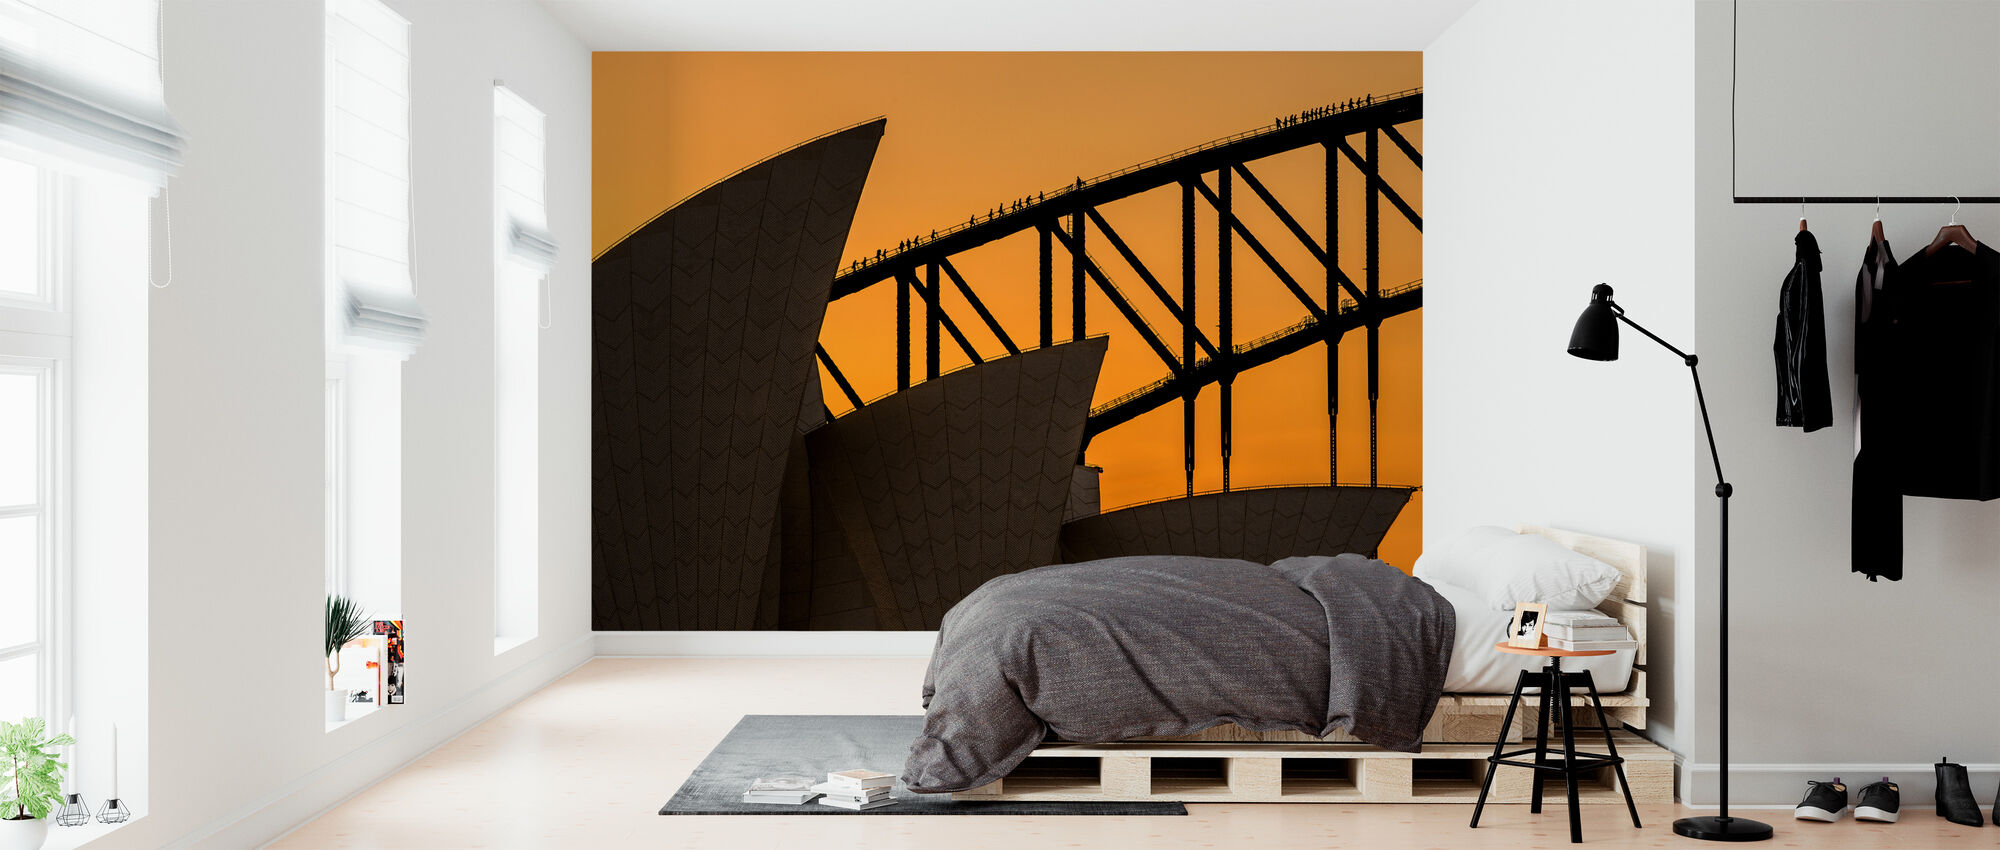 A Climb above the Sails - Wallpaper - Bedroom